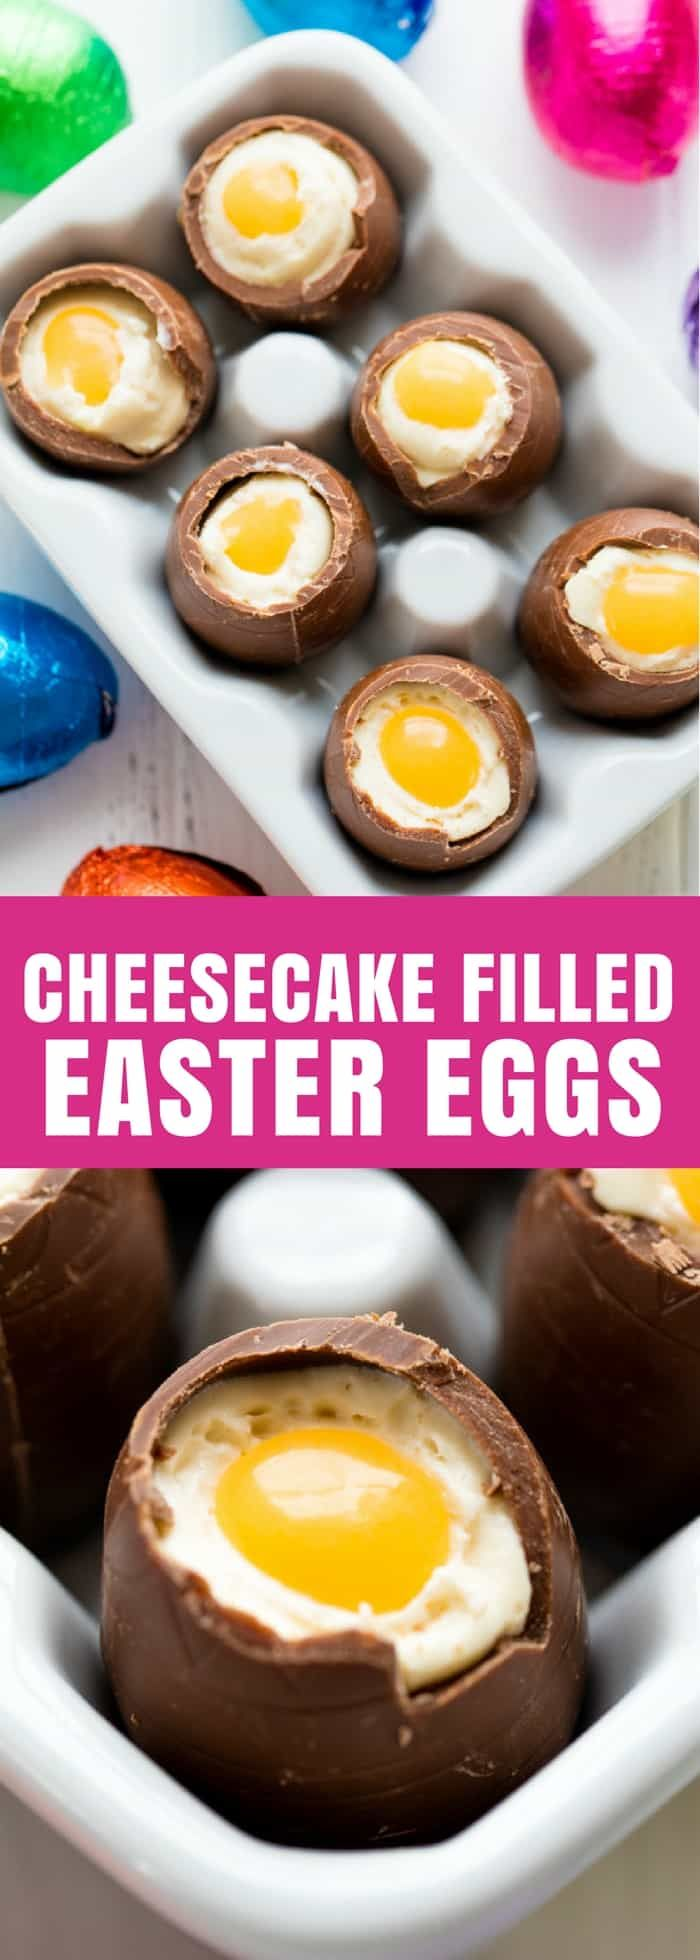 These Cheesecake Filled Easter Eggs are a fun Easter treat that are easy to make! They look just like an egg! #Easter